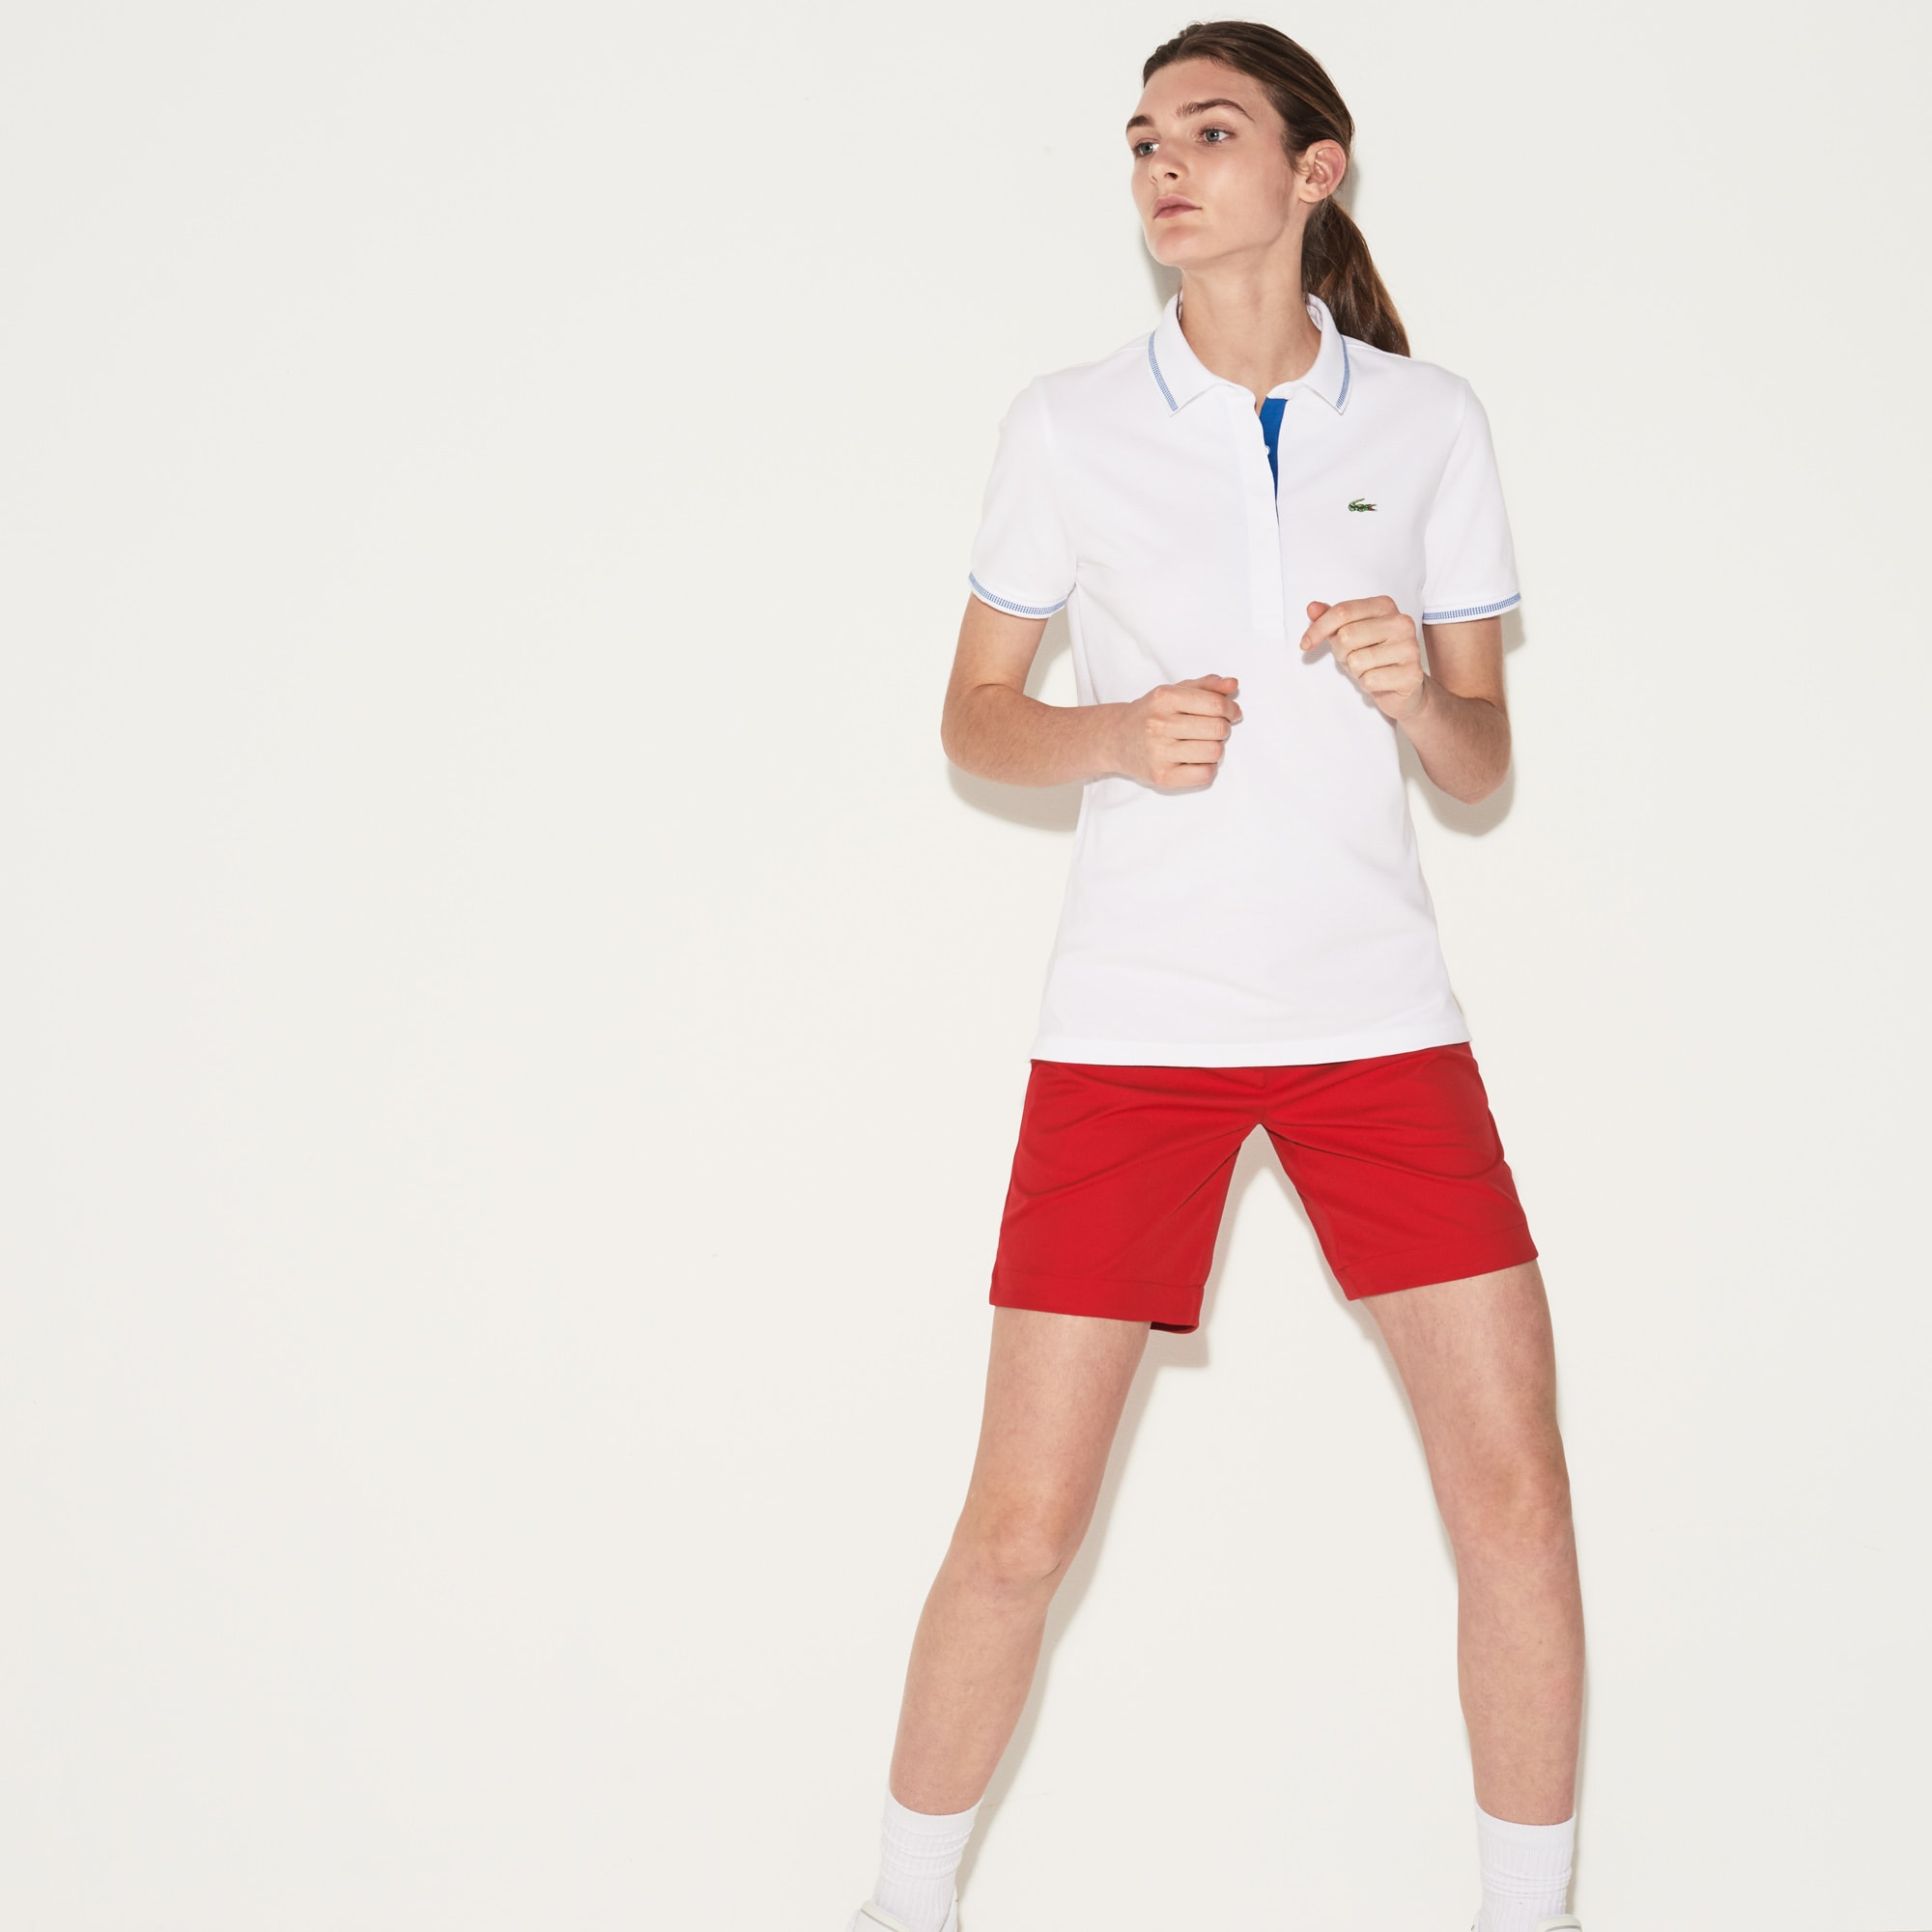 Women's Lacoste SPORT Light Stretch Technical Cotton Golf Polo